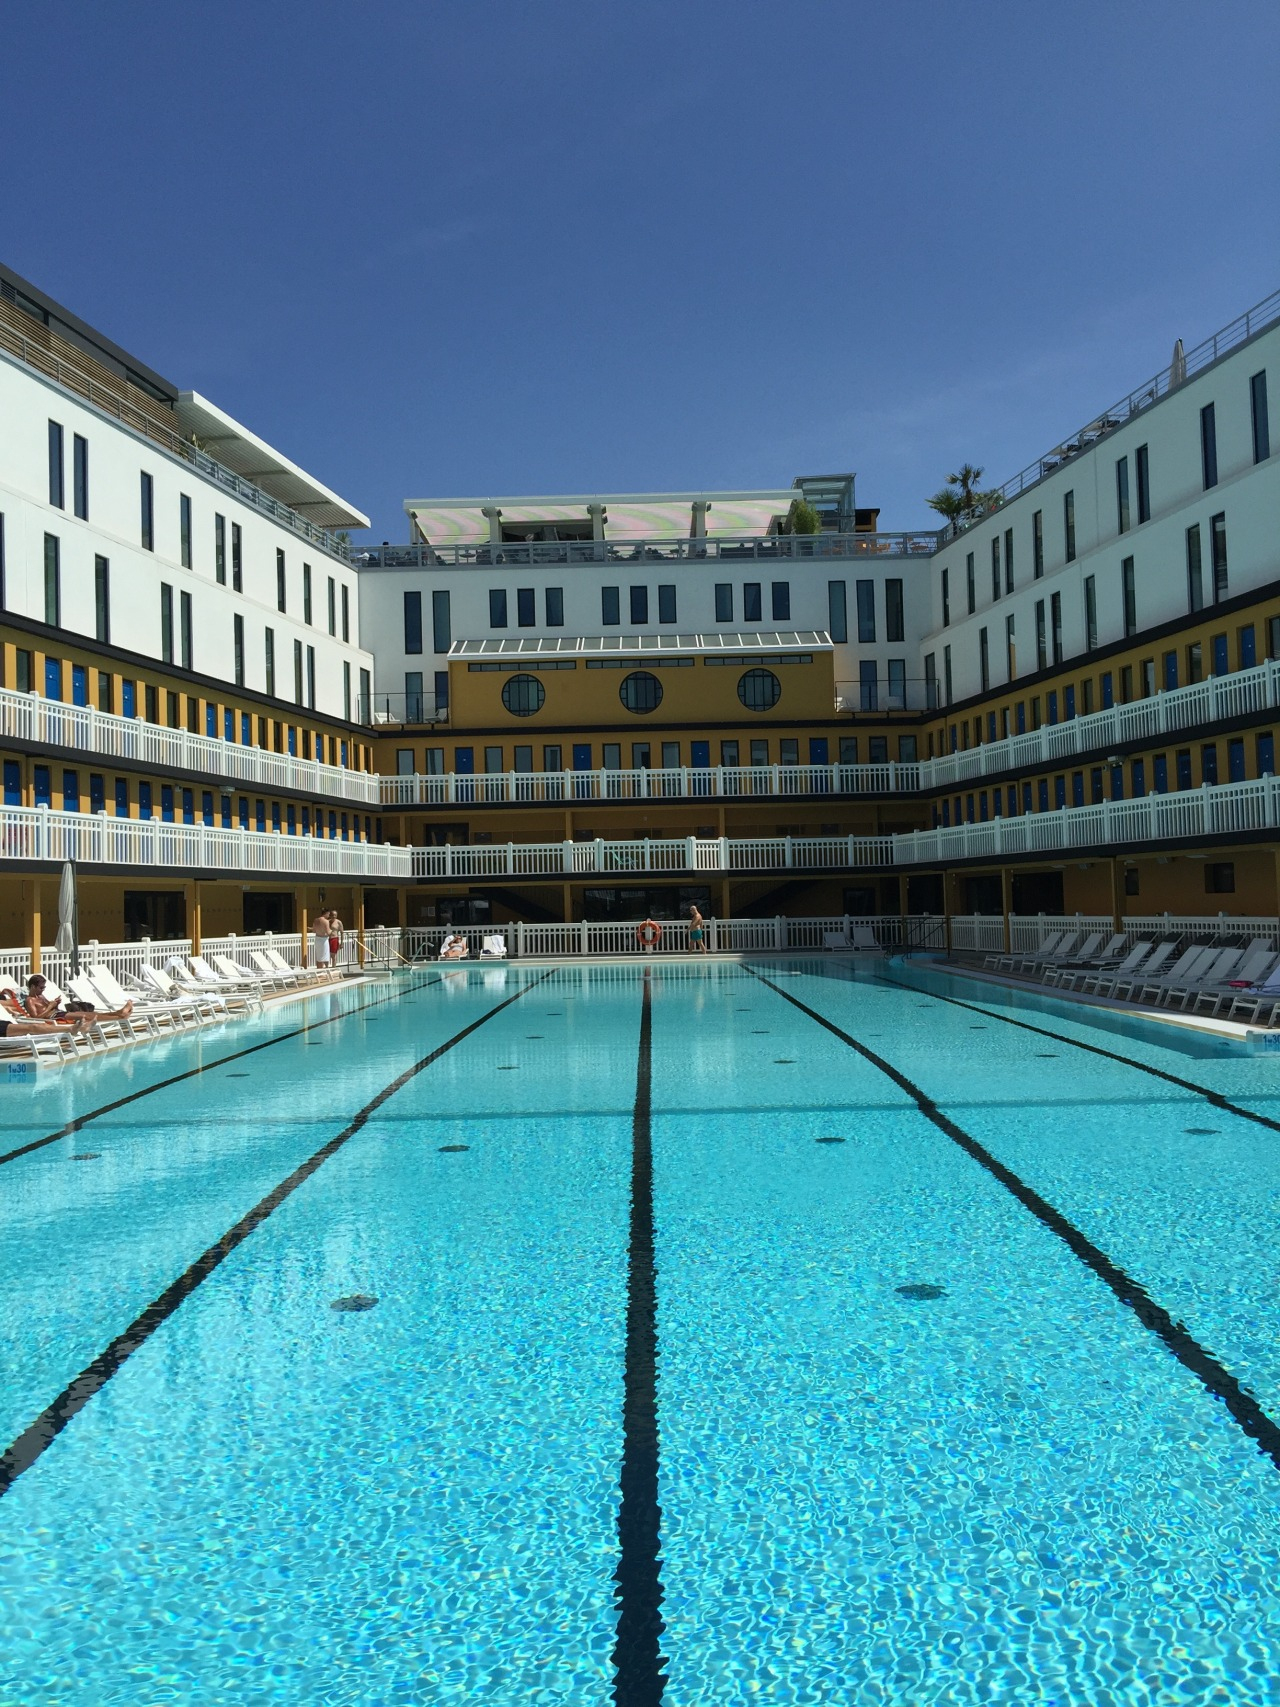 Beyond My Reflexion, By Olivier Billon - Piscine Molitor ... destiné Hotel Paris Piscine